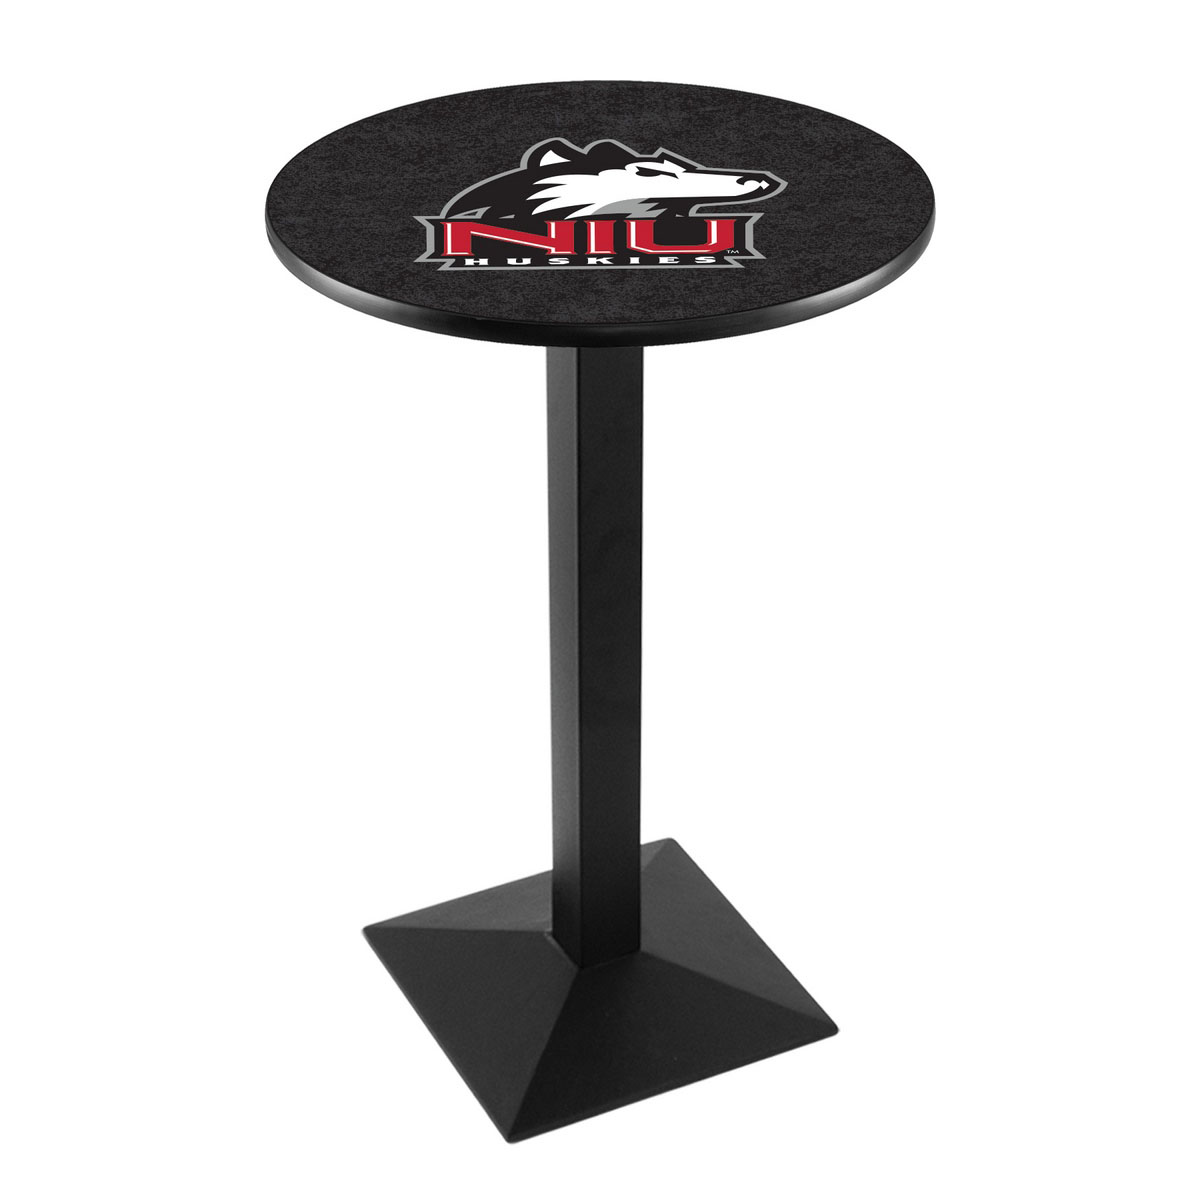 Excellent University Northern Illinois Logo Pub Bar Table Square Stand Product Photo